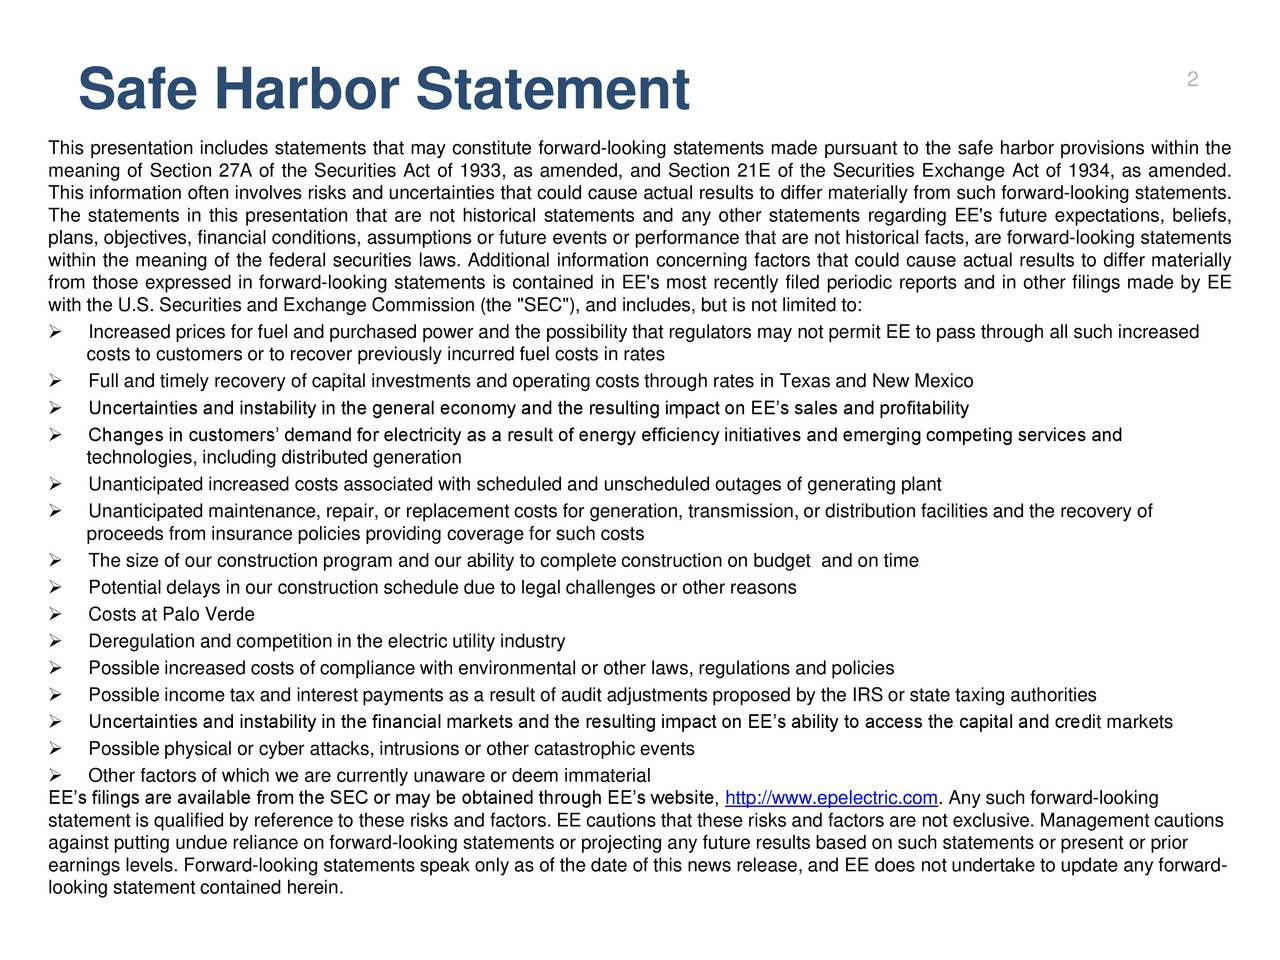 """Safe Harbor Statement This presentation includes statements that may constitute forward-looking statements made pursuant to the safe harbor provisions within the meaning of Section 27A of the Securities Act of 1933, as amended, and Section 21E of the Securities Exchange Act of 1934, as amended. This information often involves risks and uncertainties that could cause actual results to differ materially from such forward-looking statements. The statements in this presentation that are not historical statements and any other statements regarding EE's future expectations, beliefs, plans, objectives, financial conditions, assumptions or future events or performance that are not historical facts, are forward-looking statements within the meaning of the federal securities laws. Additional information concerning factors that could cause actual results to differ materially from those expressed in forward-looking statements is contained in EE's most recently filed periodic reports and in other filings made by EE with the U.S. Securities and Exchange Commission (the """"SEC""""), and includes, but is not limited to: Increased prices for fuel and purchased power and the possibility that regulators may not permit EE to pass through all such increased costs to customers or to recover previously incurred fuel costs in rates Full and timely recovery of capital investments and operating costs through rates in Texas and New Mexico Uncertainties and instability in the general economy and the resulting impact on EEs sales and profitability Changes in customers demand for electricity as a result of energy efficiency initiatives and emerging competing services and technologies, including distributed generation Unanticipated increased costs associated with scheduled and unscheduled outages of generating plant Unanticipated maintenance, repair, or replacement costs for generation, transmission, or distribution facilities and the recovery of proceeds from insurance policies providing coverage for"""